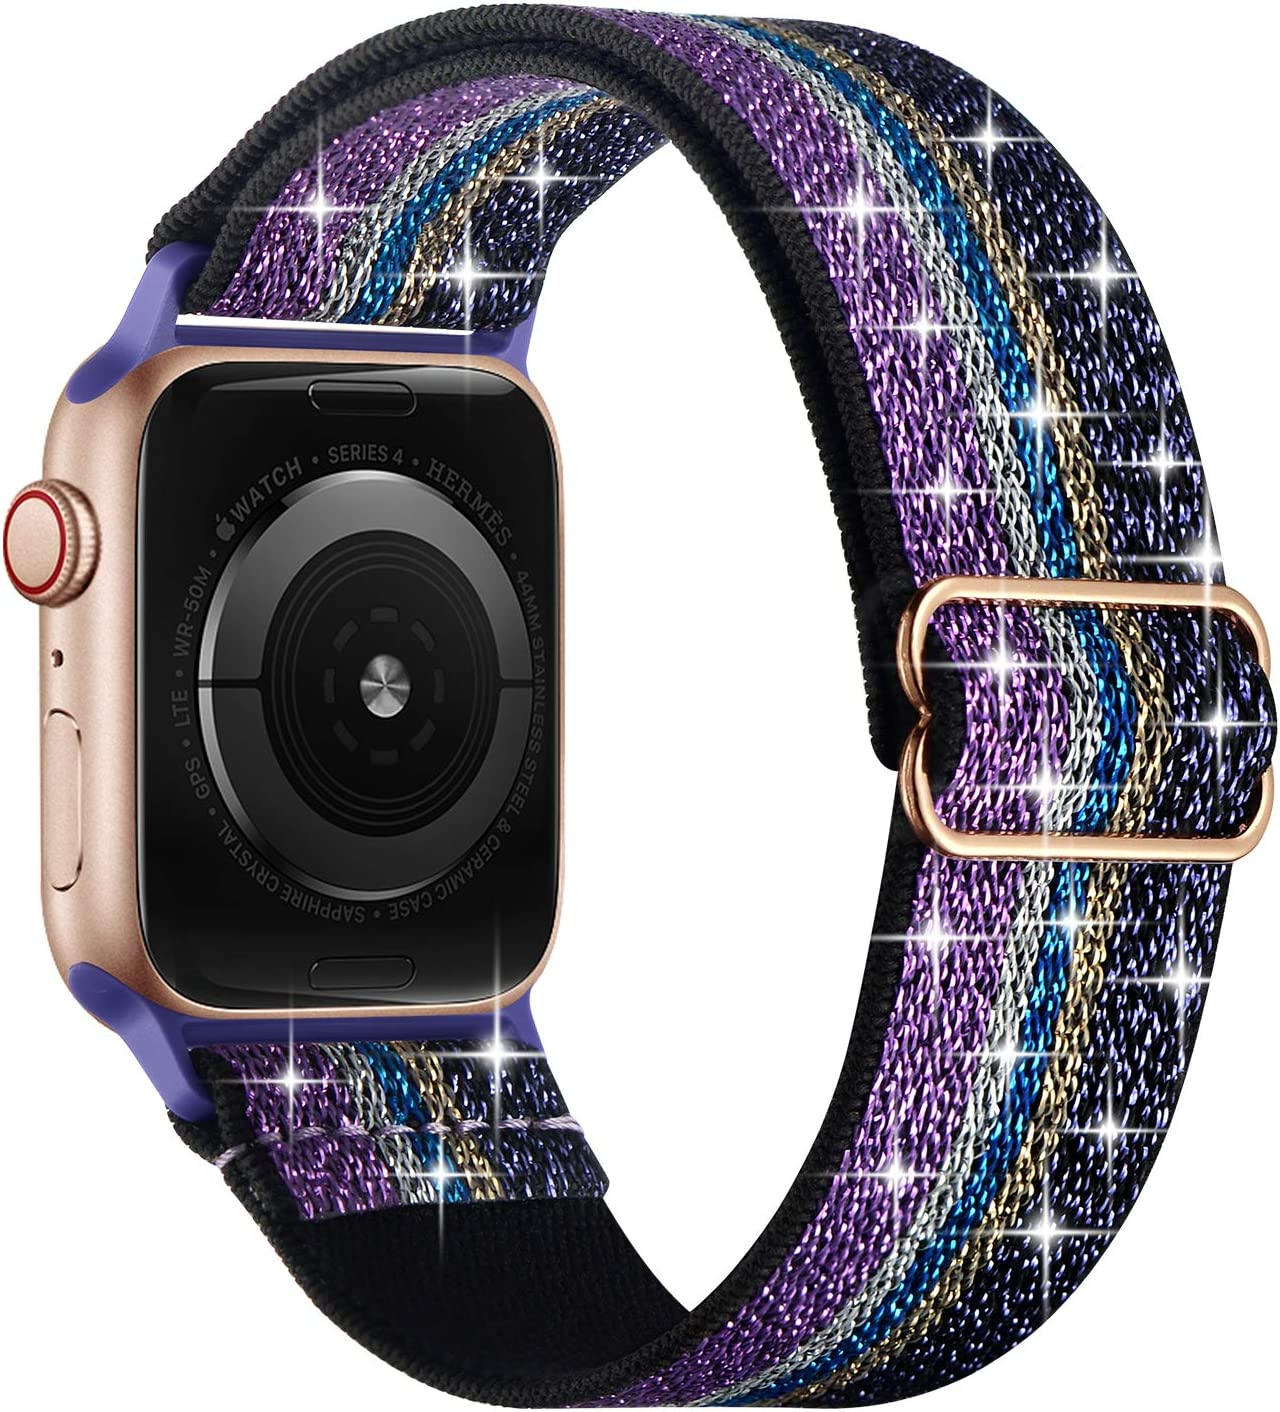 OXWALLEN Sparkly Stretchy Elastic Solo Loop Compatible with Apple Watch Bands 42mm 44mm, Adjustable Braided Sport Nylon Women Strap for iWatch SE Series 6/5/4/3/2/1, Z/Violet/Purple